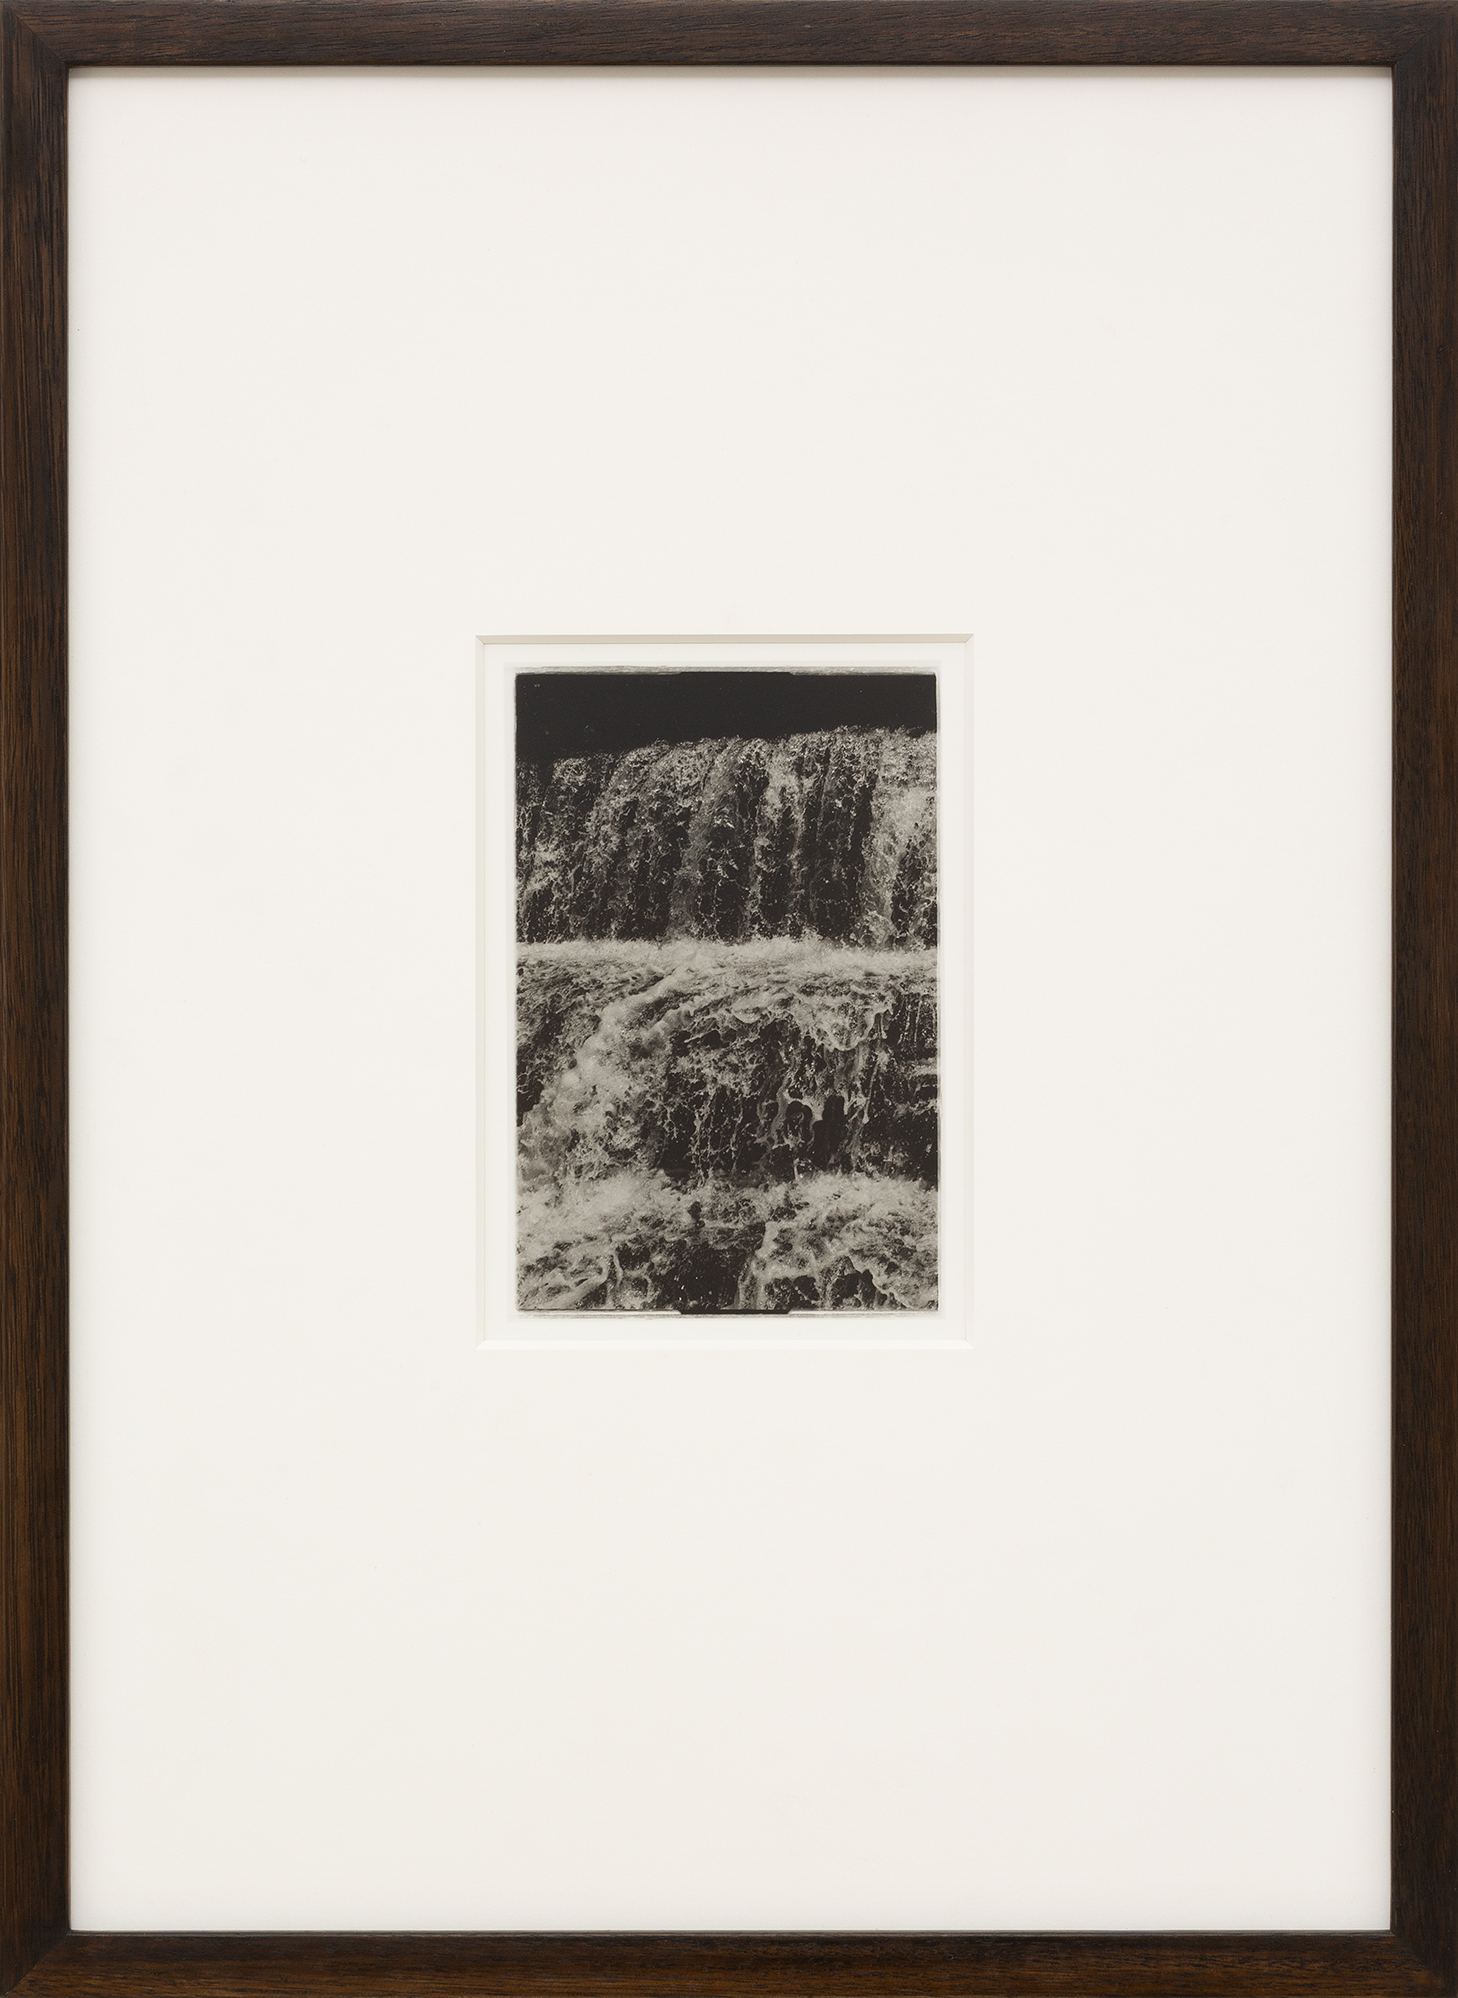 ANTHONY HODGKINSON Engulfed VI 2019 silver gelatin print 56 × 40 cm (edition of 3) Framed with Tasmanian oak and Museum Glass®